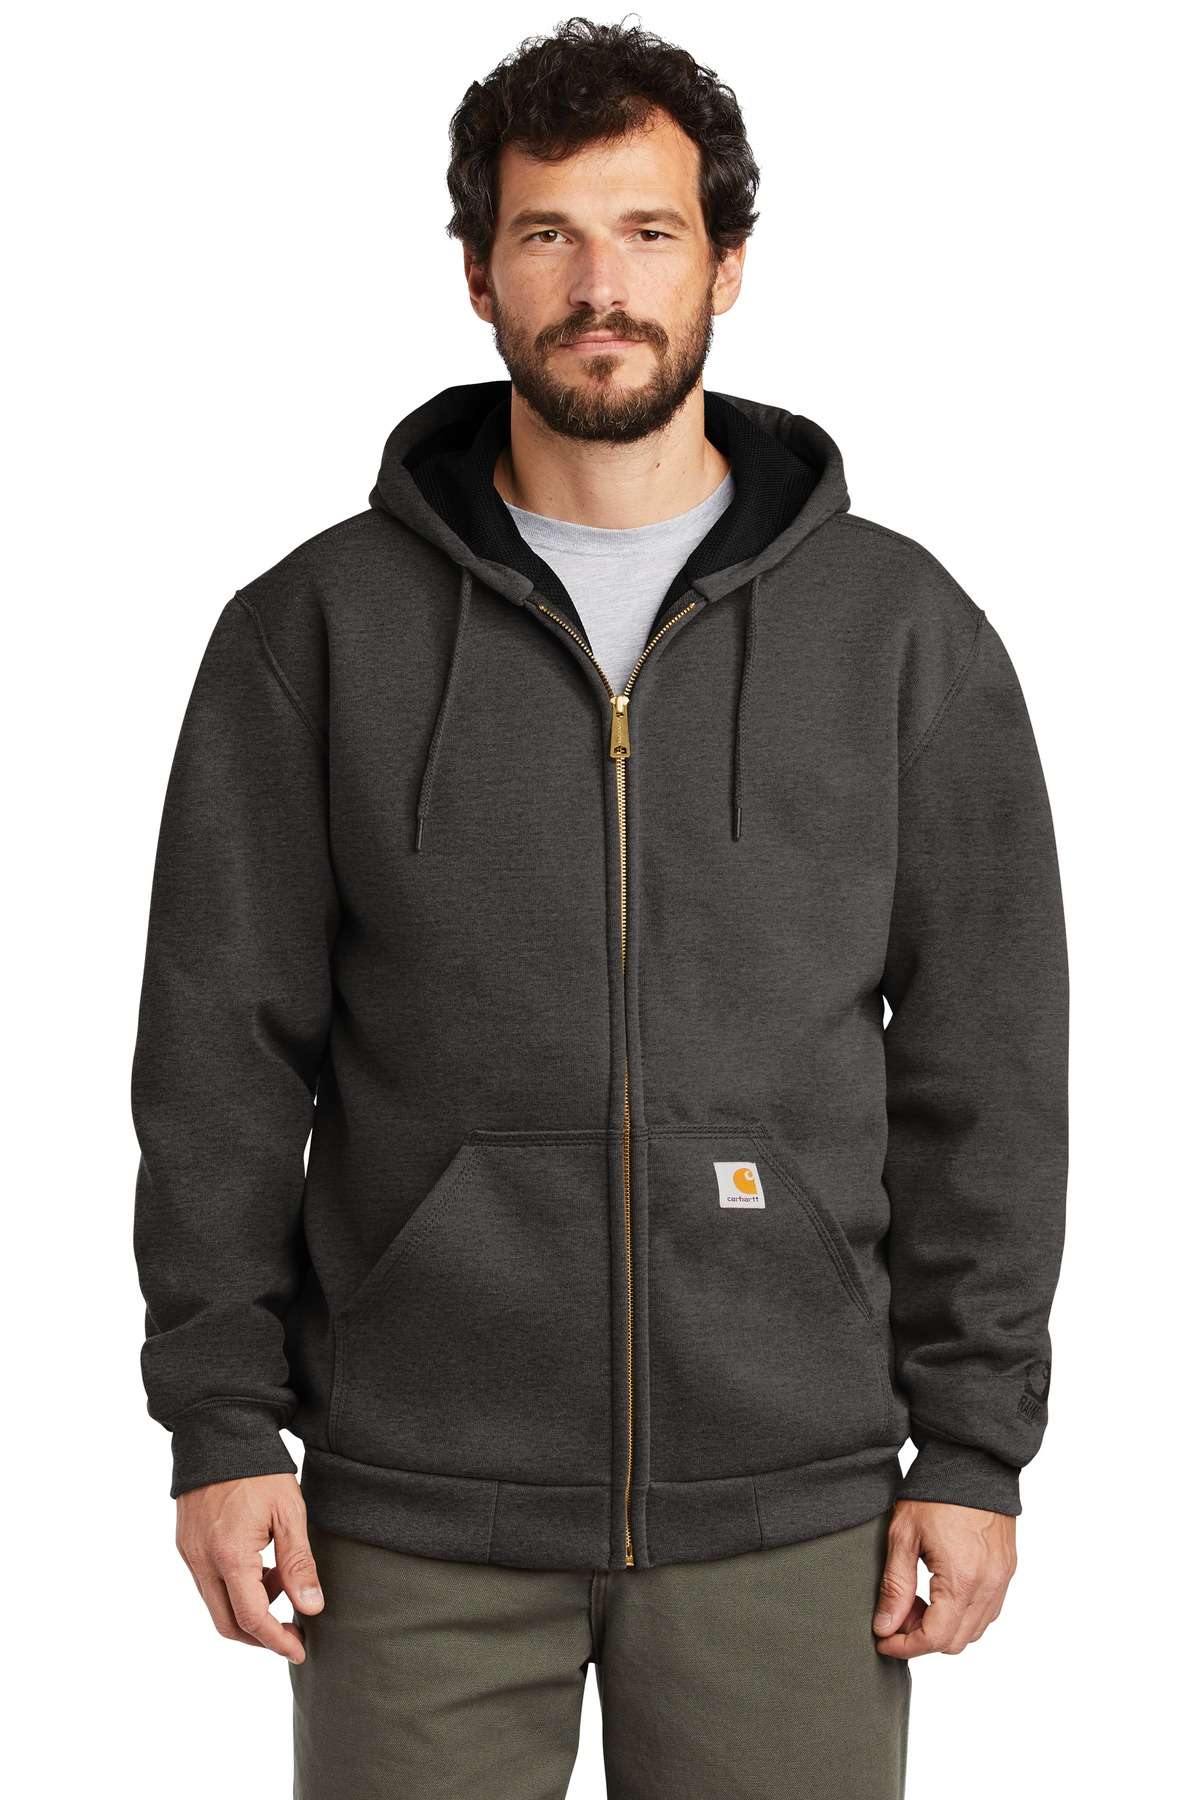 Carhartt  ®  Rain Defender  ®  Rutland Thermal-Lined Hooded Zip-Front Sweatshirt. CT100632 - Carbon Heather